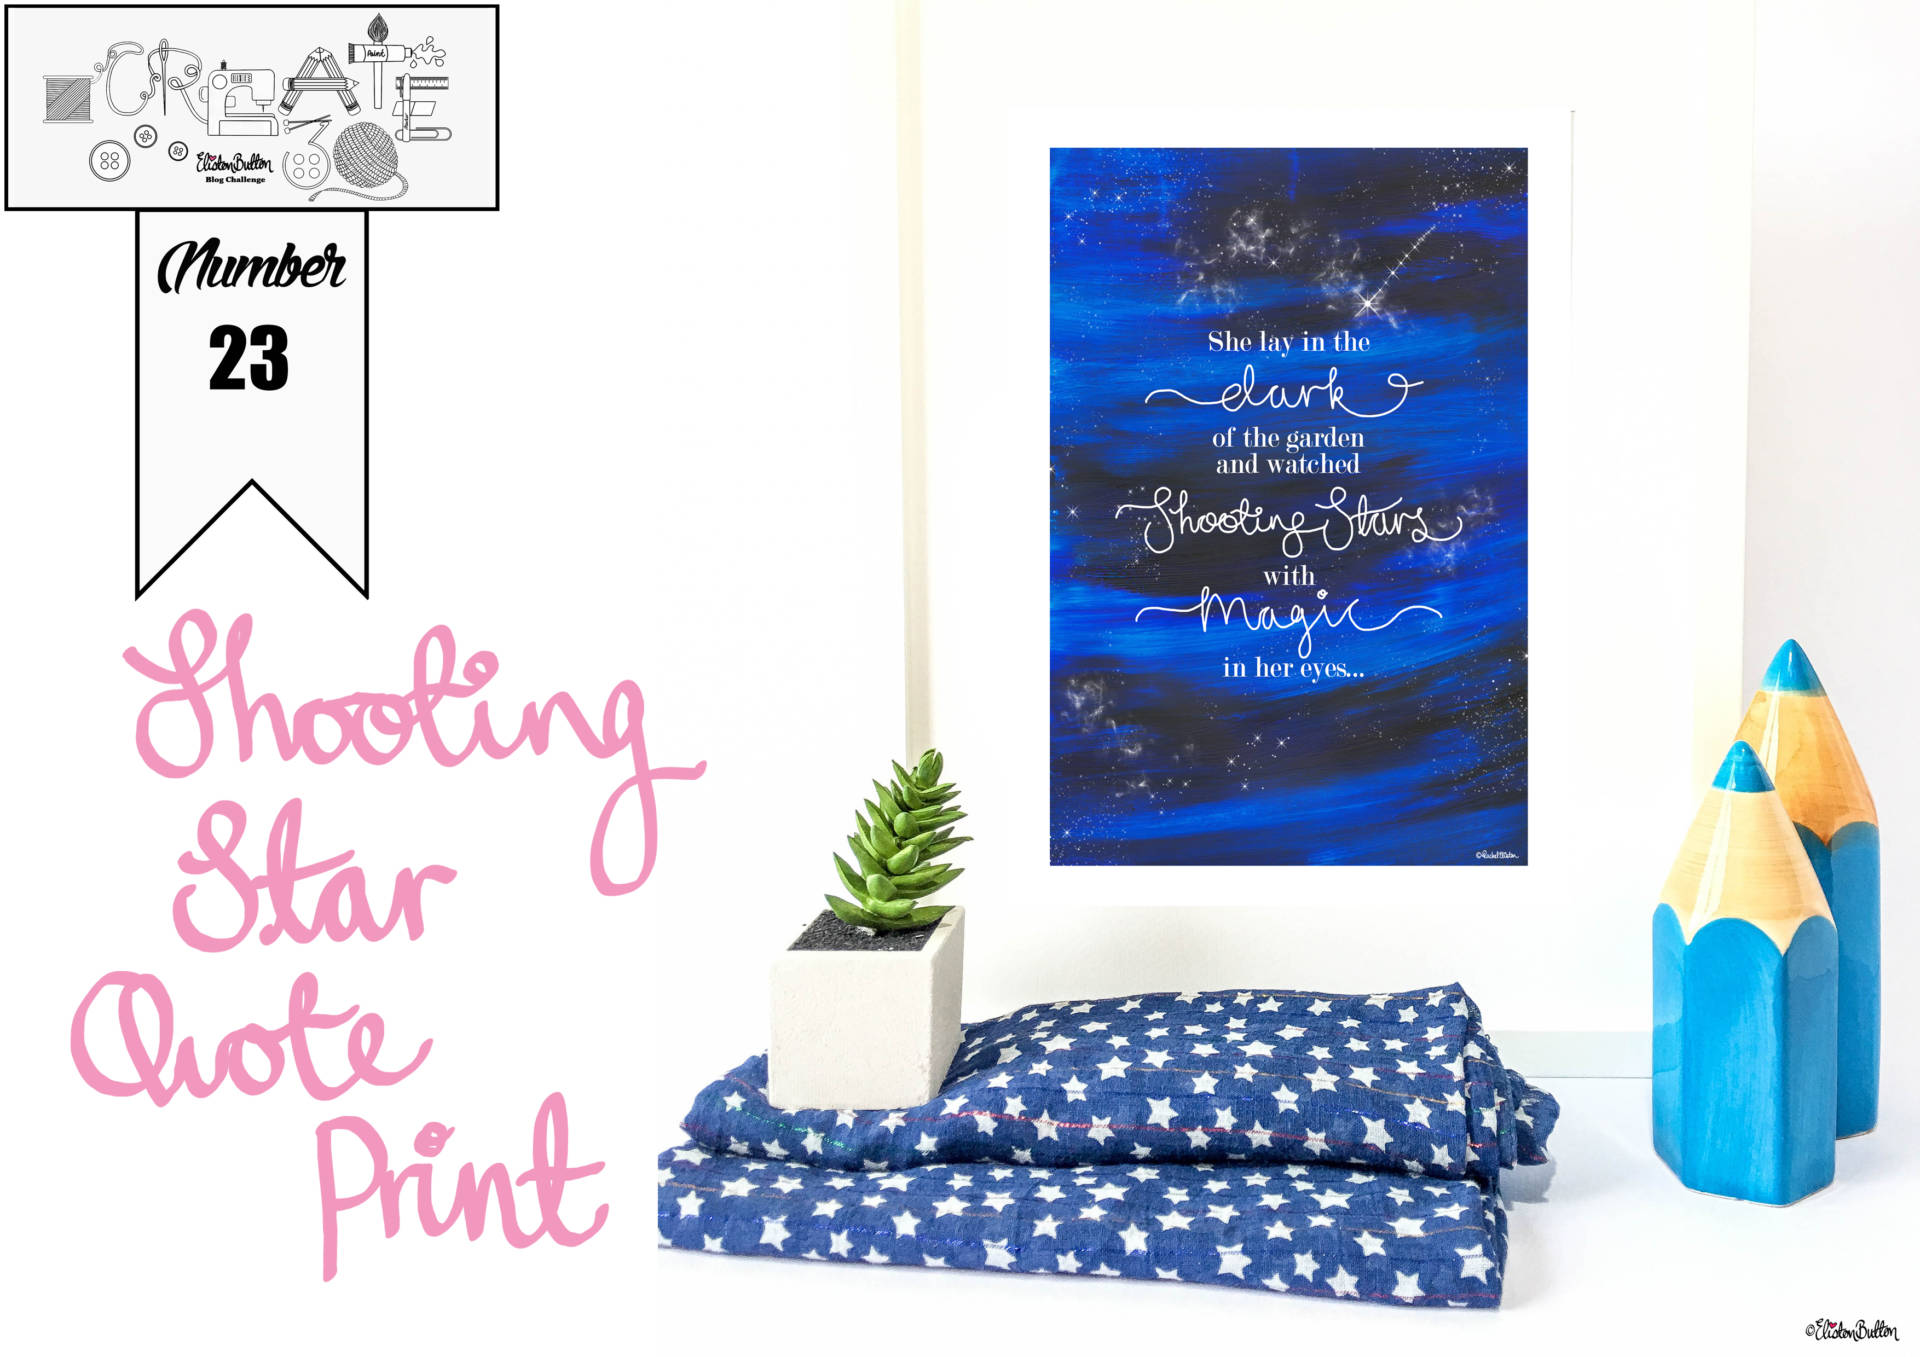 Create 30 - No. 23 - Shooting Star Quote Print by Eliston Button - Create 30 - No. 23 - Shooting Star Quote Print at www.elistonbutton.com - Eliston Button - That Crafty Kid – Art, Design, Craft & Adventure.